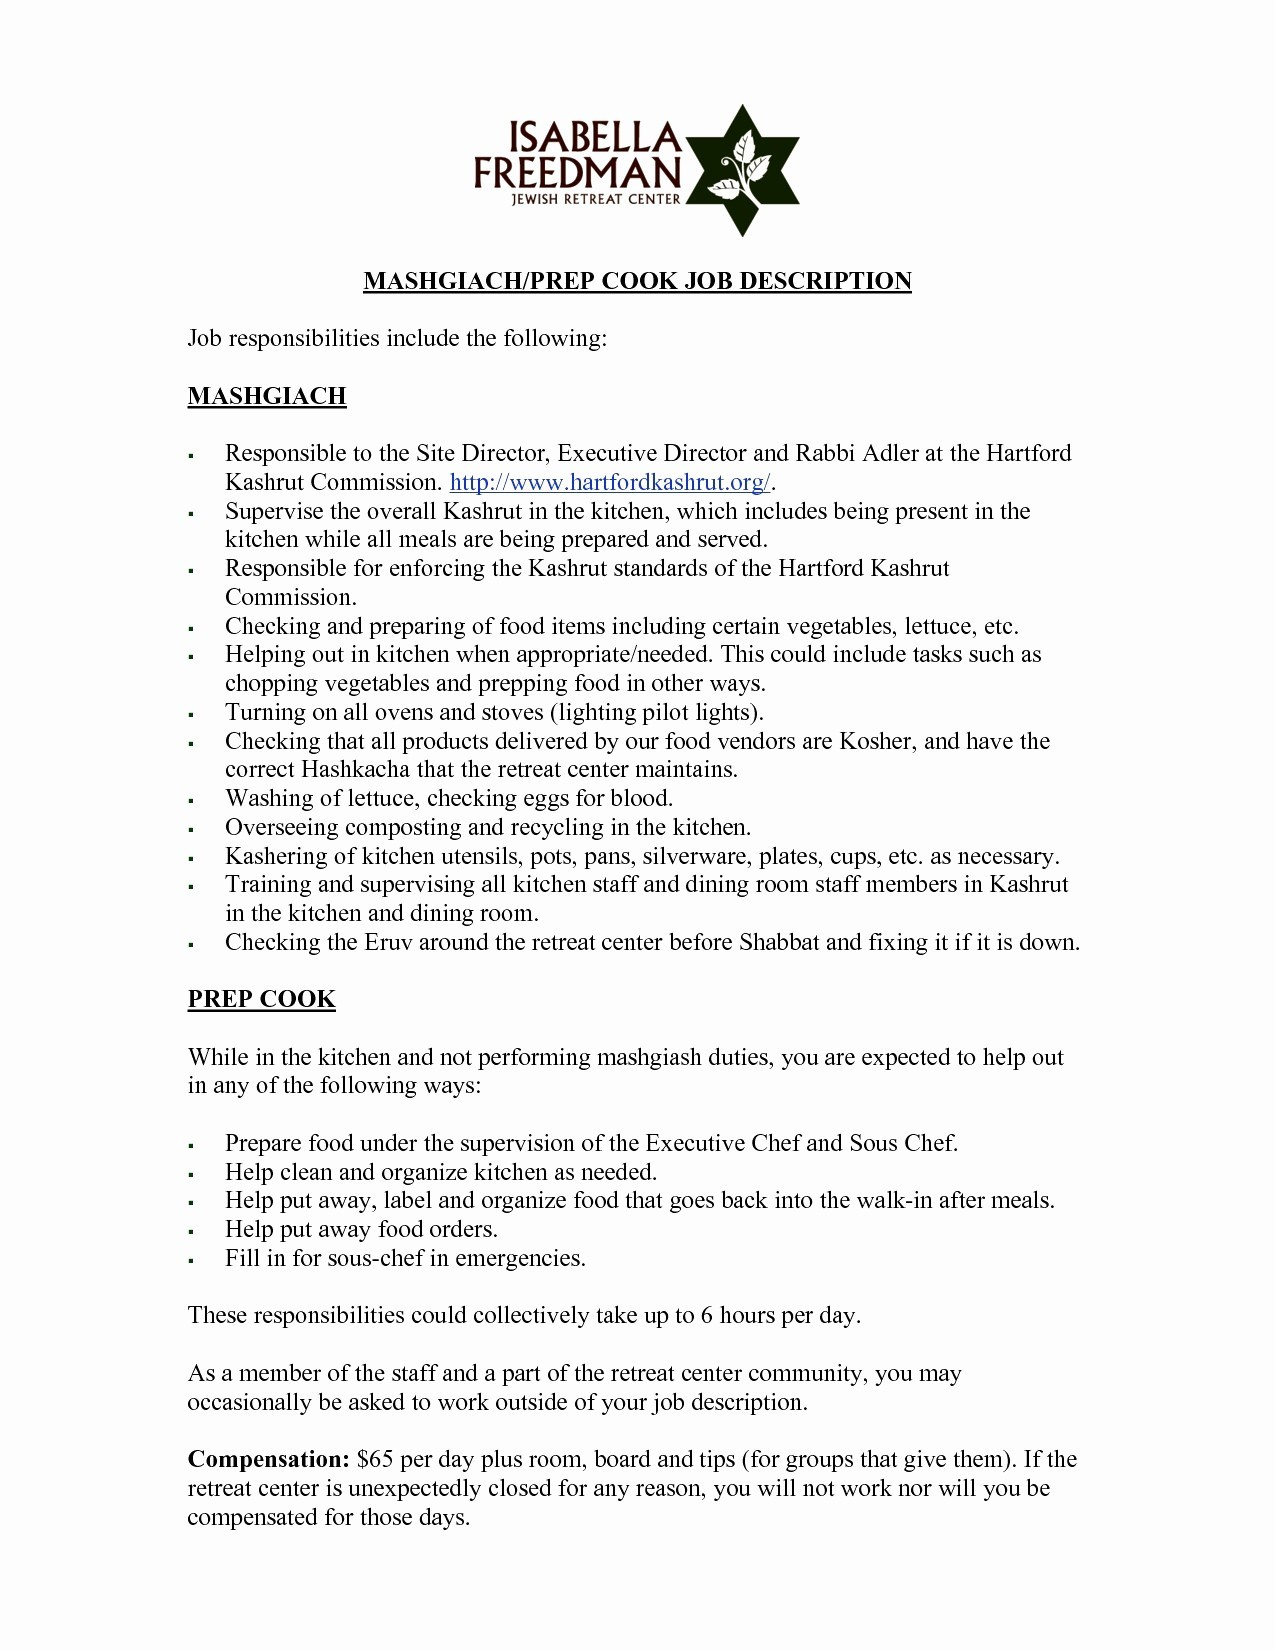 Executive assistant Cover Letter Template - Executive assistant Sample Resume Best Elegant Example Resume